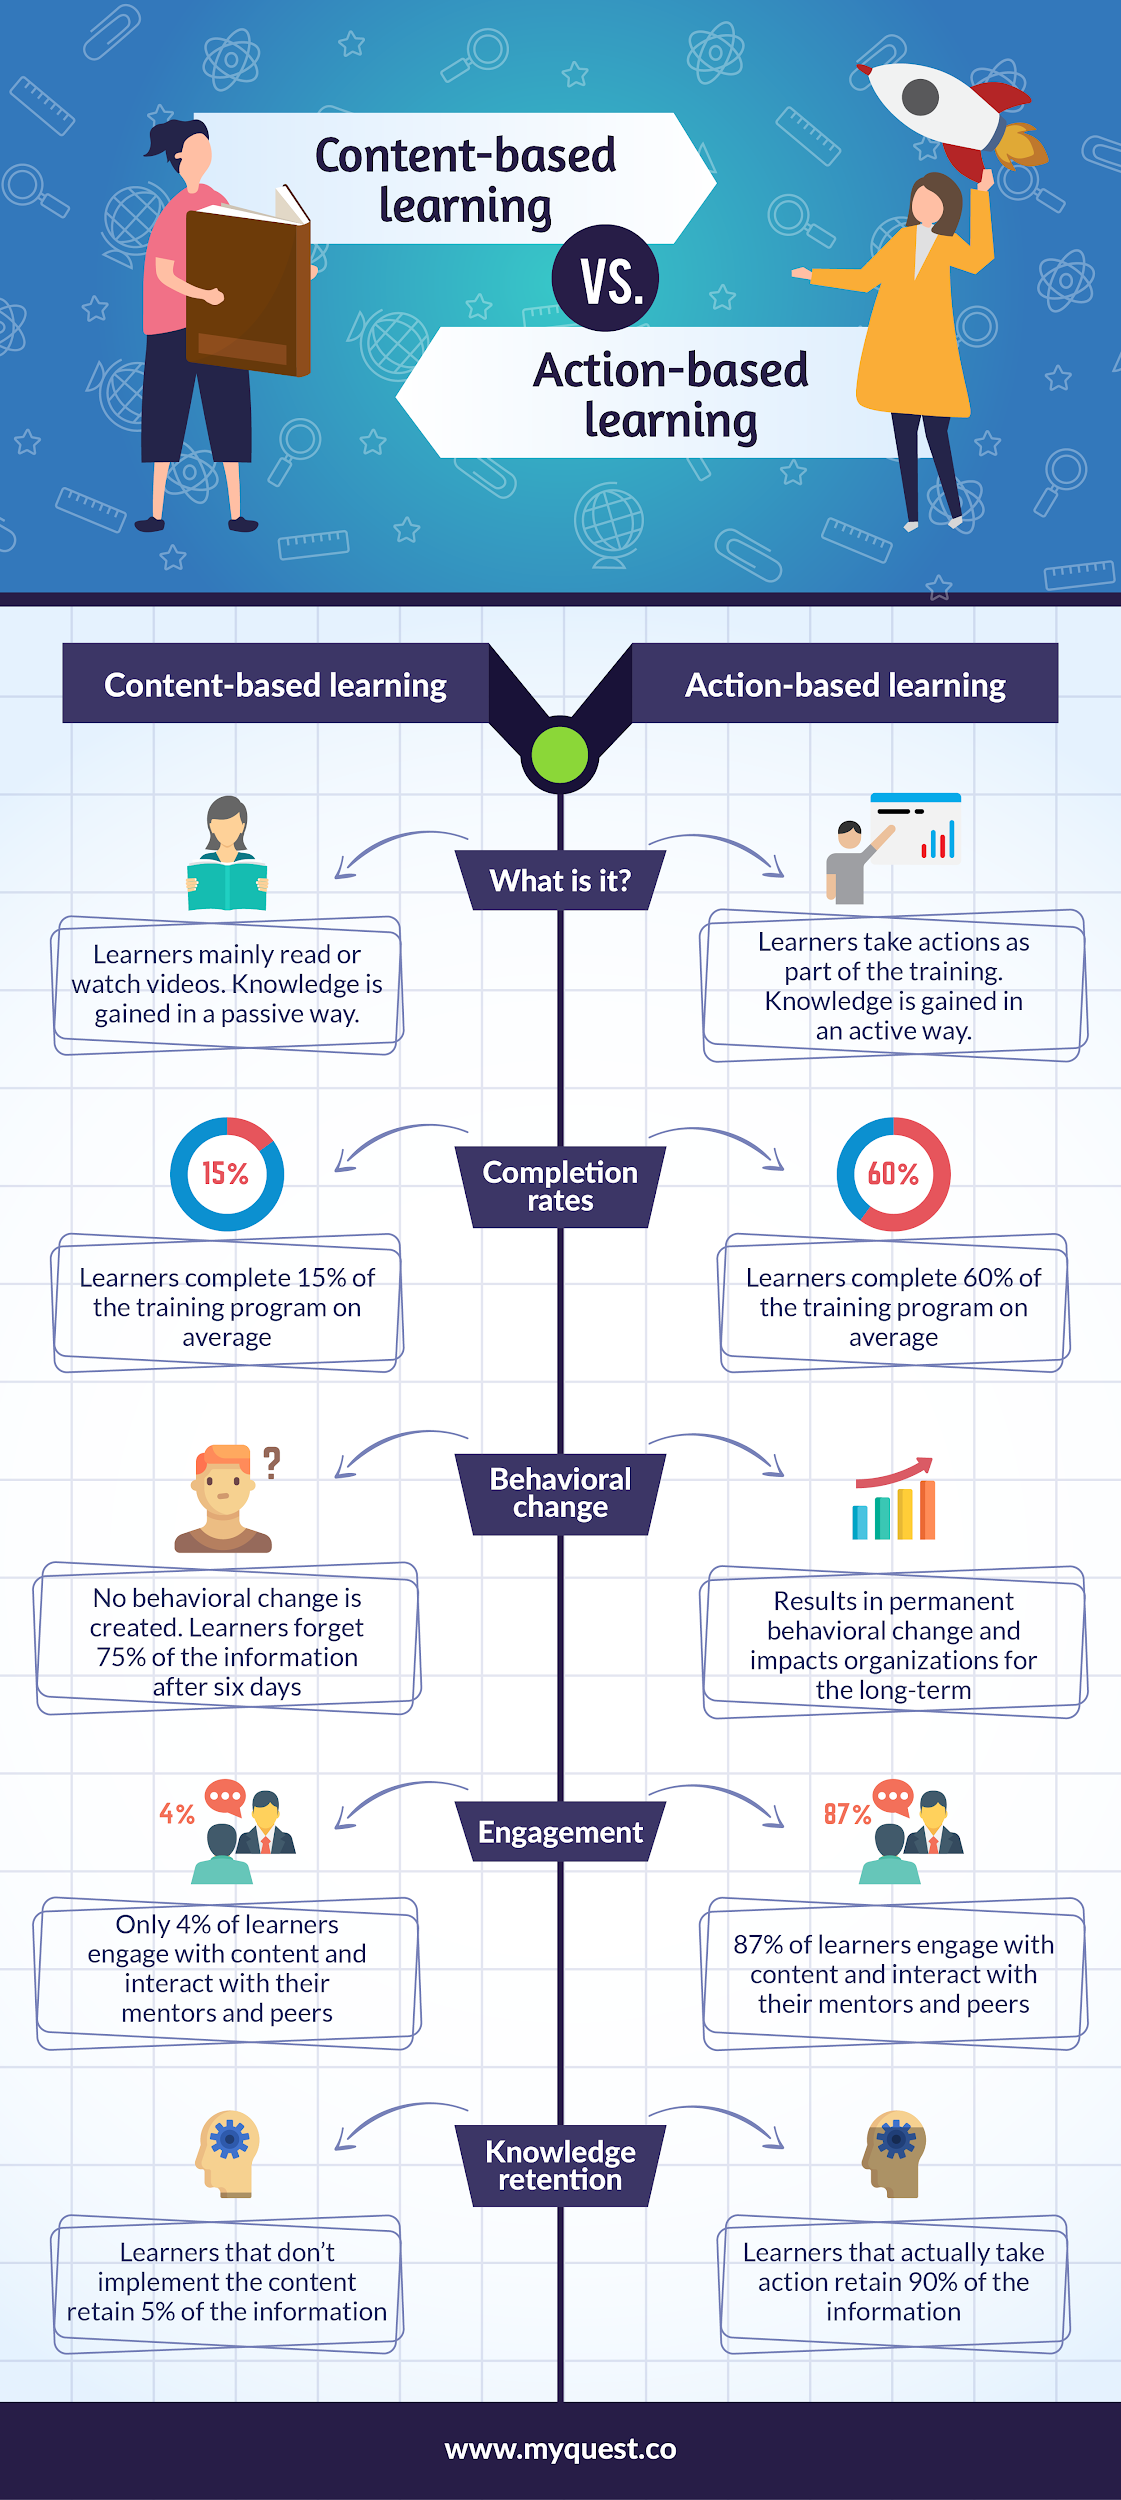 Content-based learning vs Action-based learning